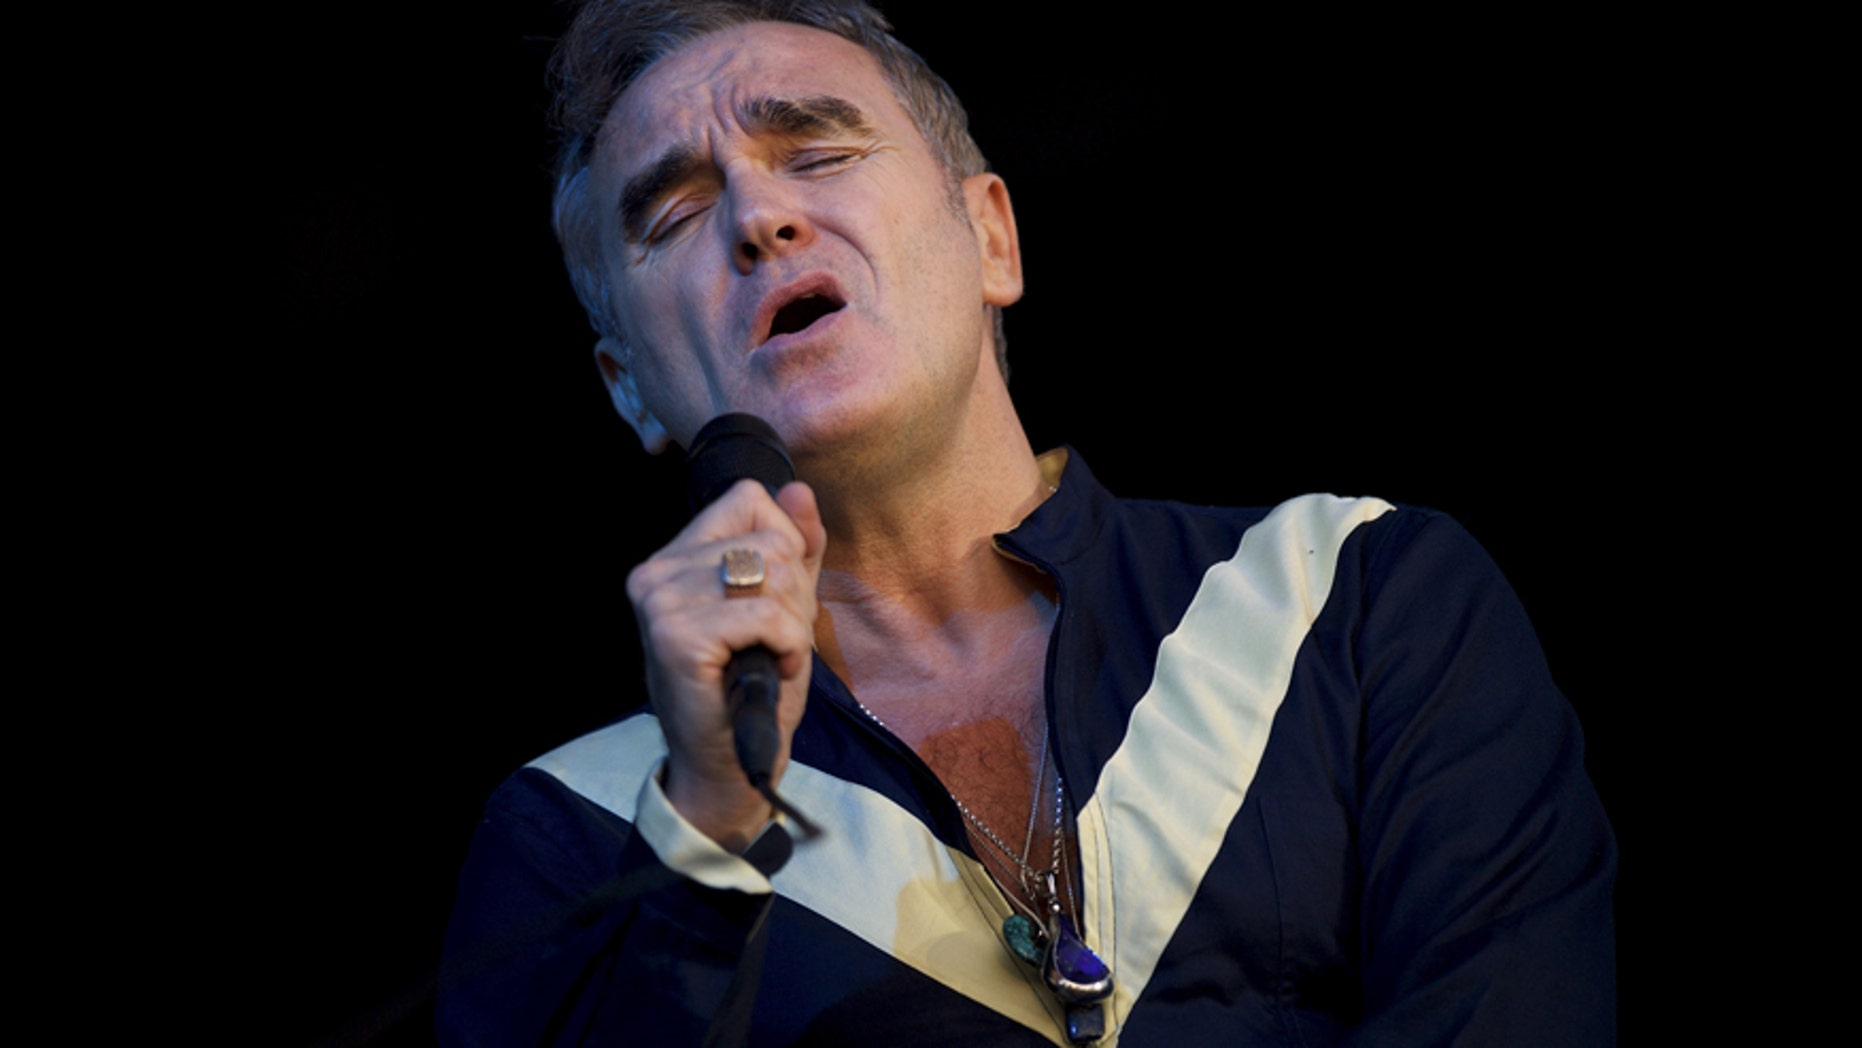 Morrissey performs at the Firefly Music Festival in Dover, Delaware June 19, 2015.